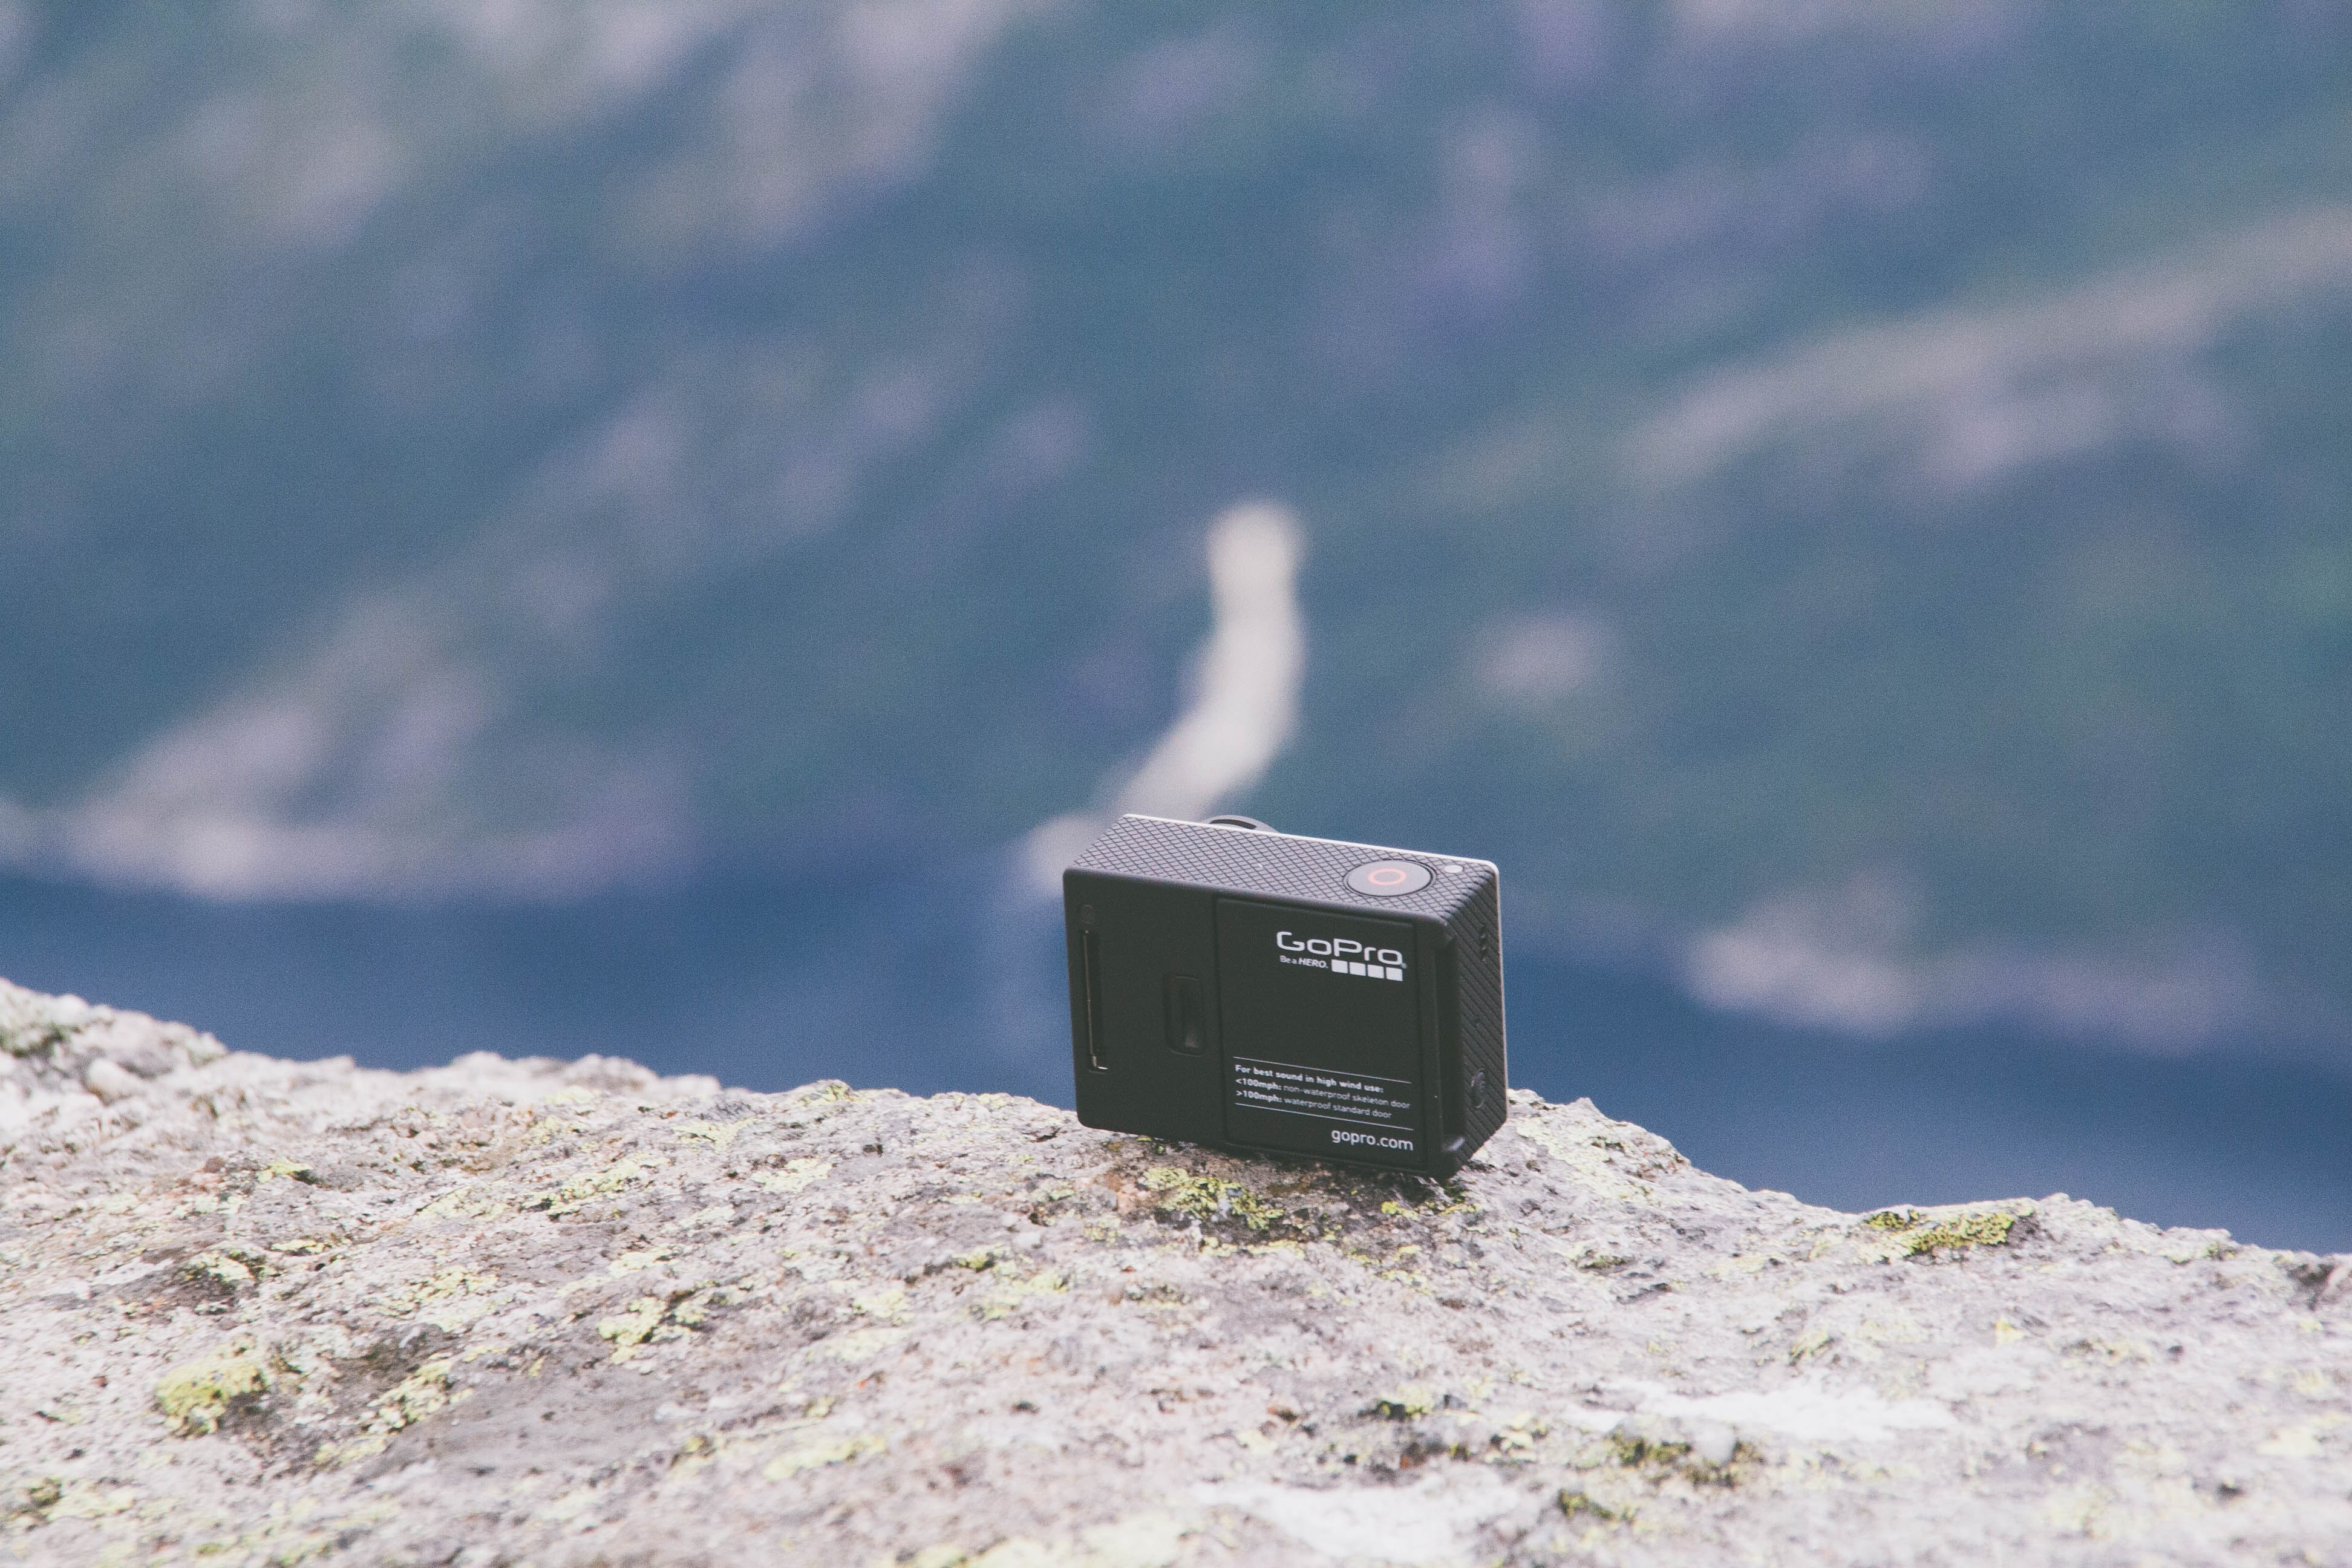 A GoPro camera sitting on a mountain cliff.